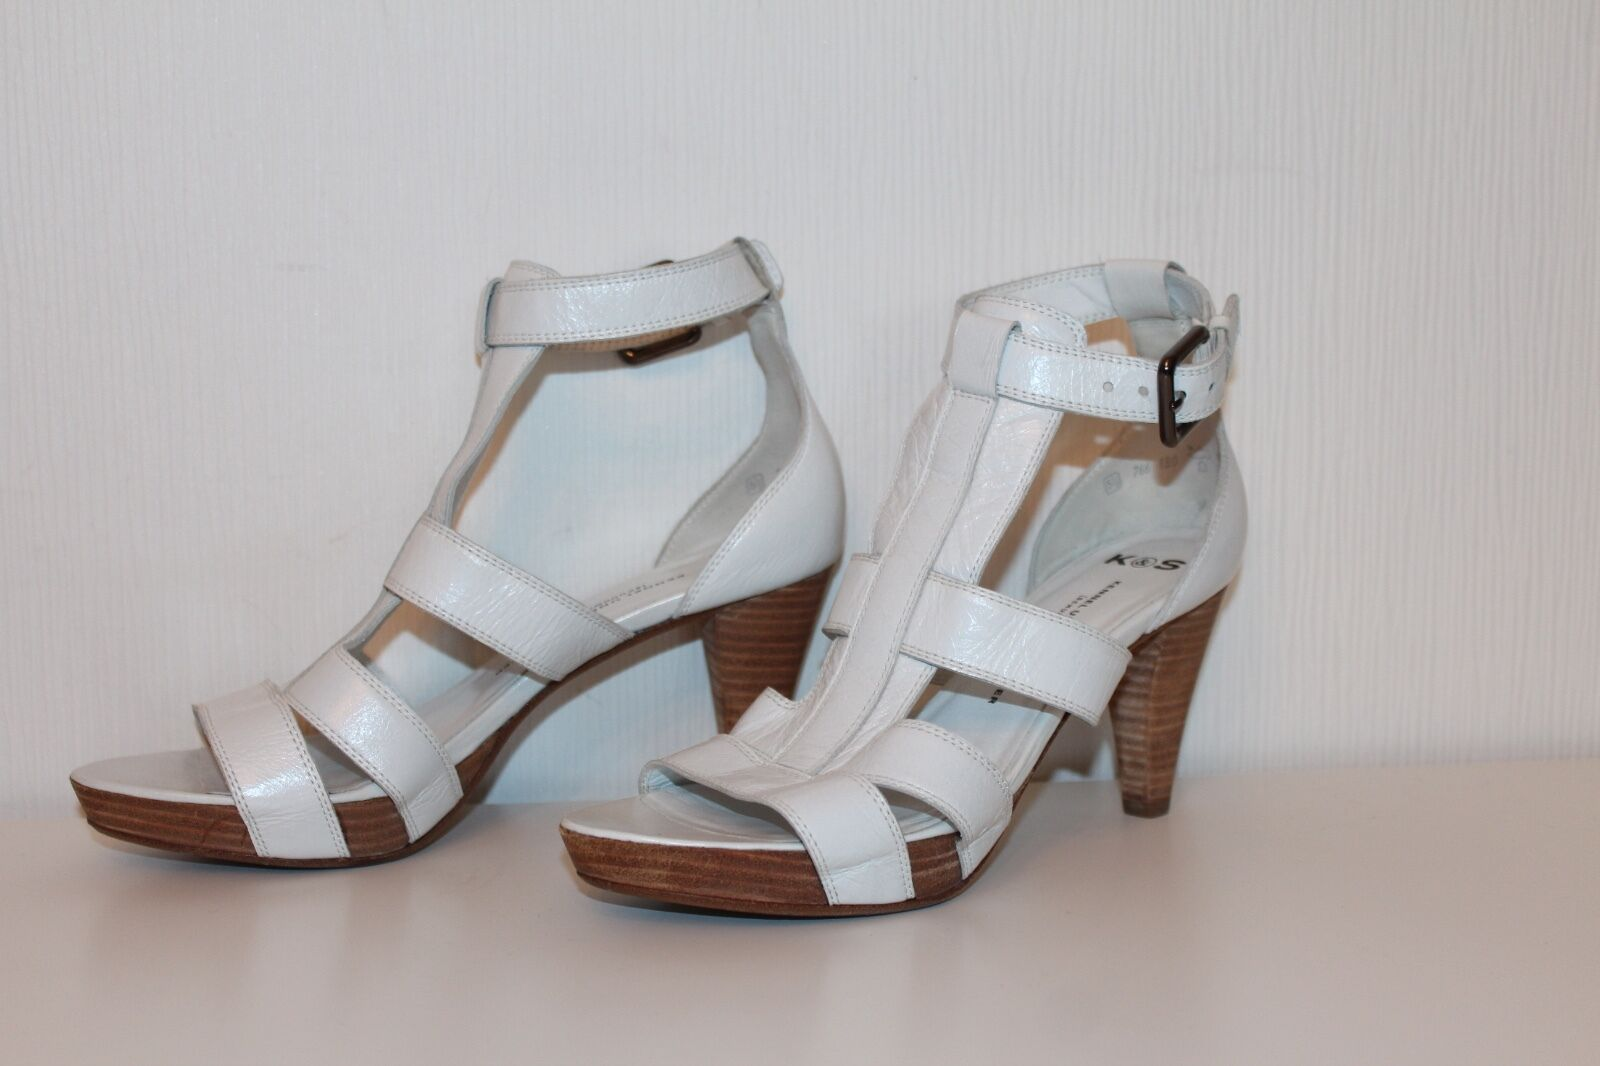 Tamaris cuero señora sandalias zapatos 37 con tachuelas Leather sandals uk4 antelina